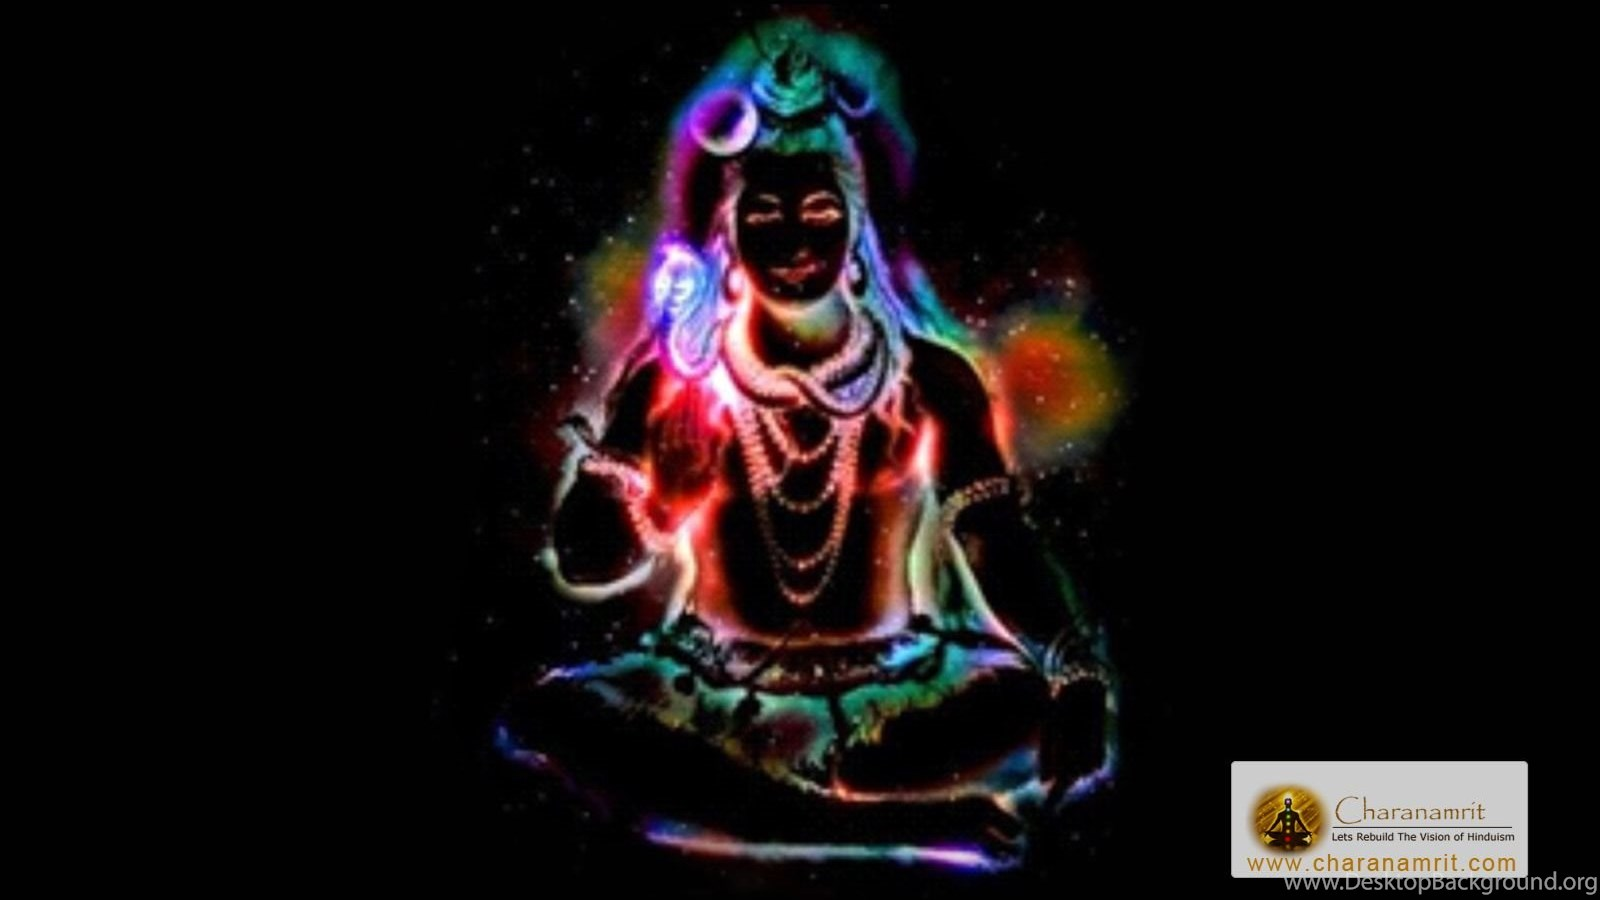 Lord Shiva Colorful Lighting Effects Hd Wallpapers For Free Desktop Background